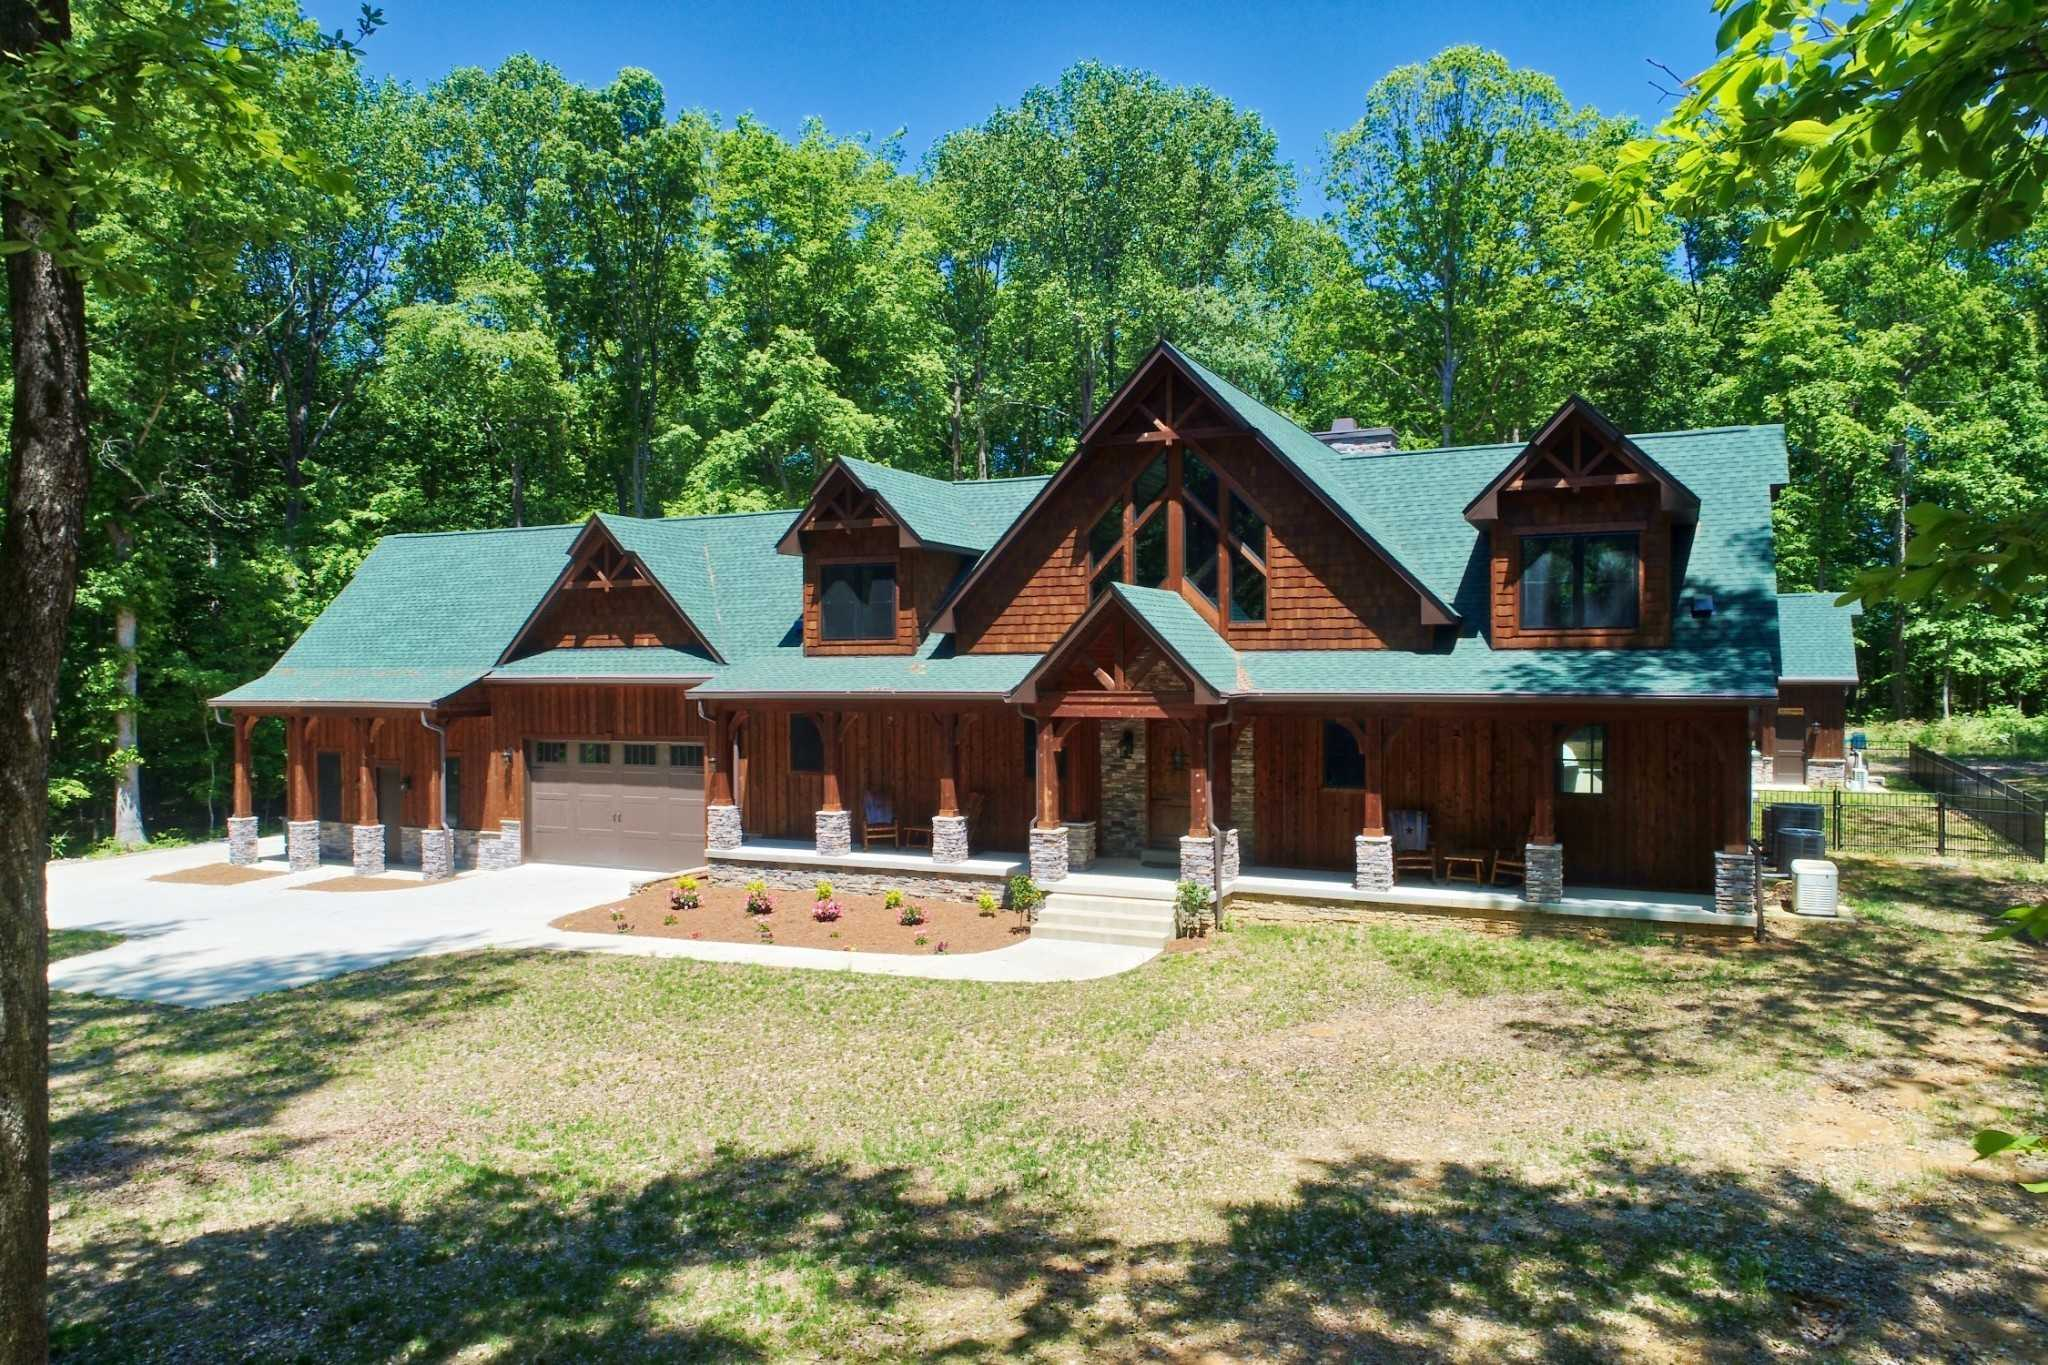 $1,300,000 - 4Br/5Ba -  for Sale in None, White House